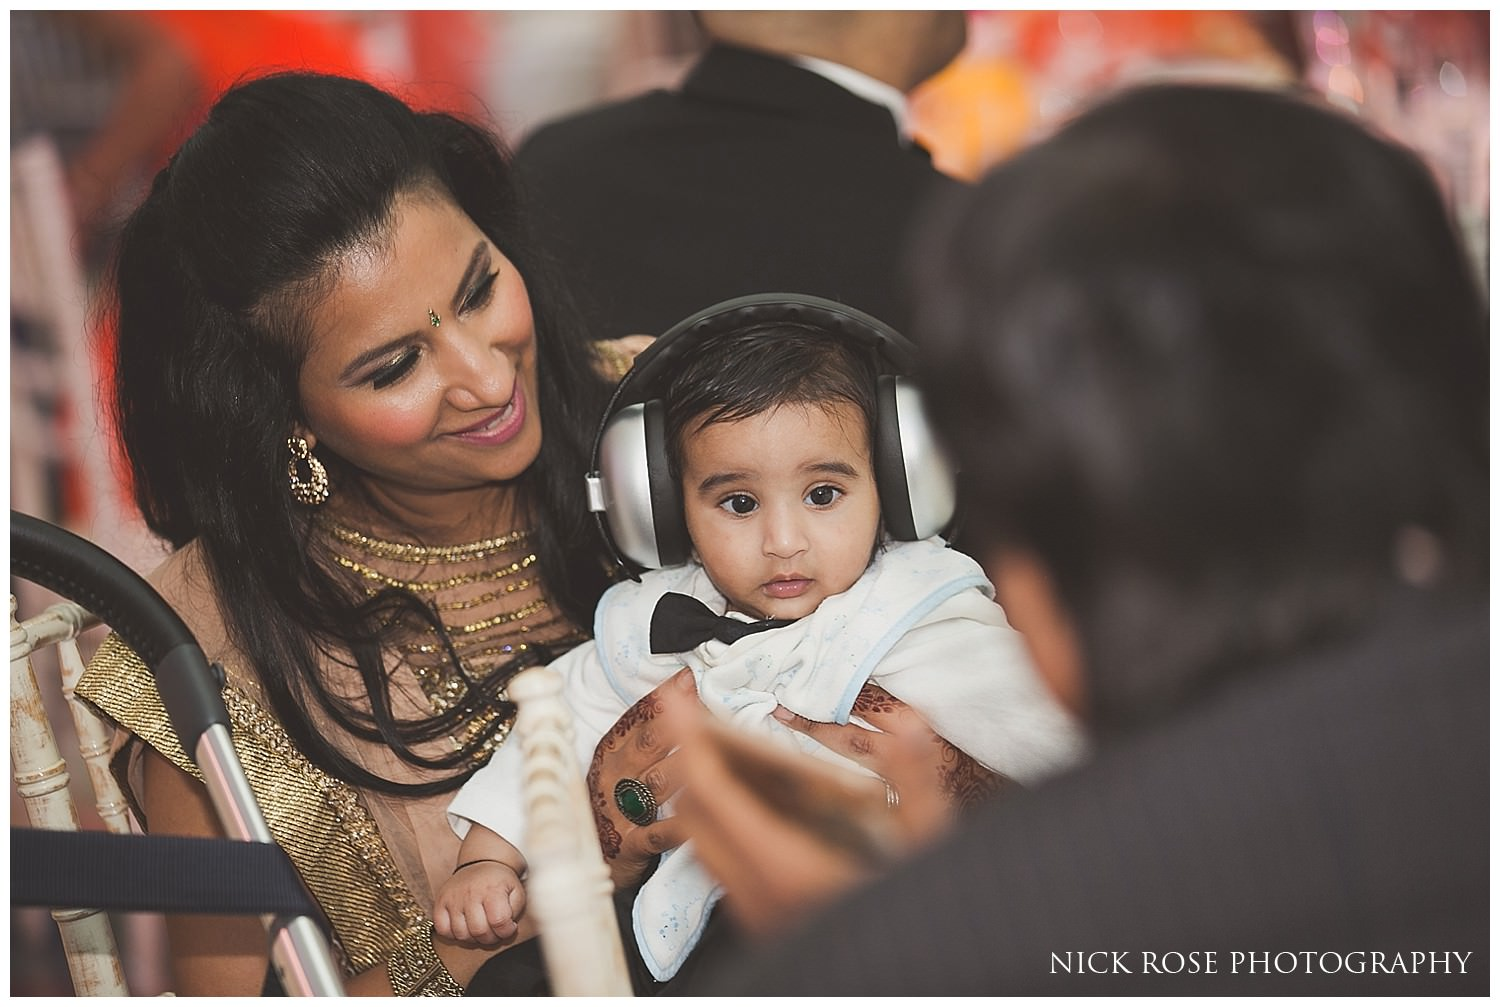 Baby with ear defenders for an Asian wedding in London